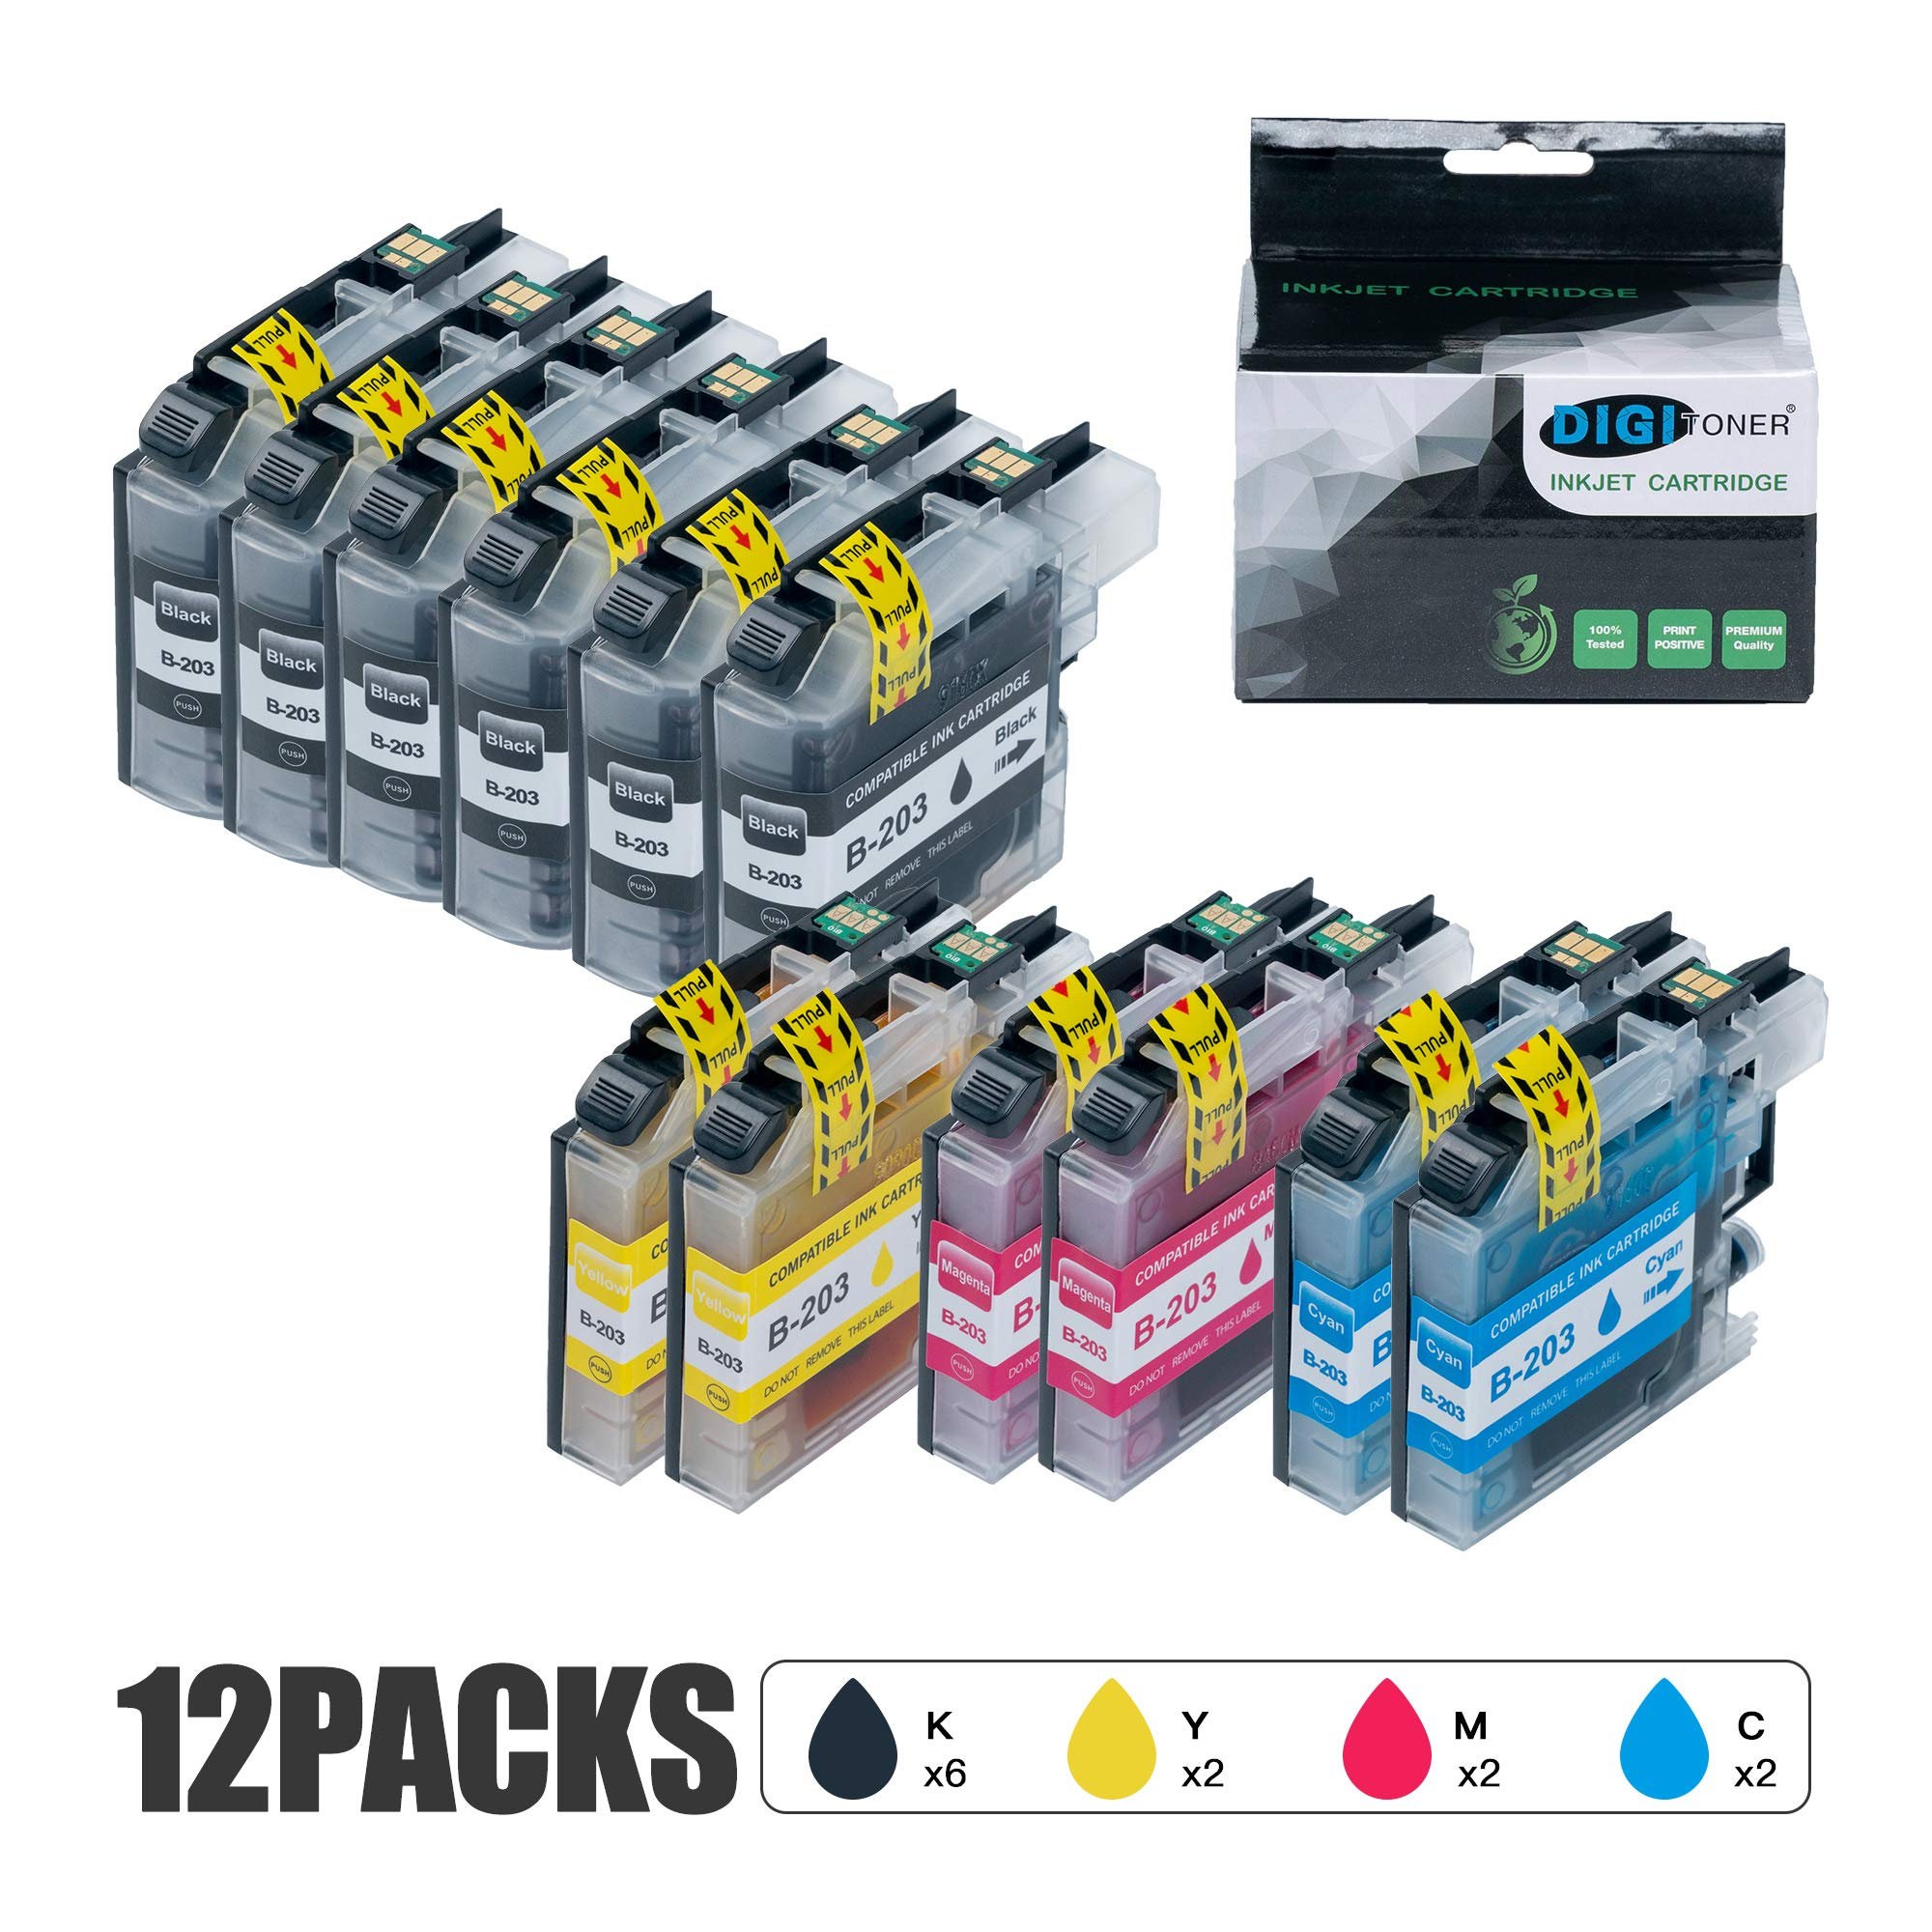 DIGITONER Compatible LC203 Ink Cartridge Replacement for Brother LC203XL LC203 to use with MFC-J480DW MFC-J680DW MFC-J880DWMFC-J485DW MFC-J4620DW MFCJ5720DW [6 Black 2 Cyan 2 Magenta 2 Yellow] 12 Pack